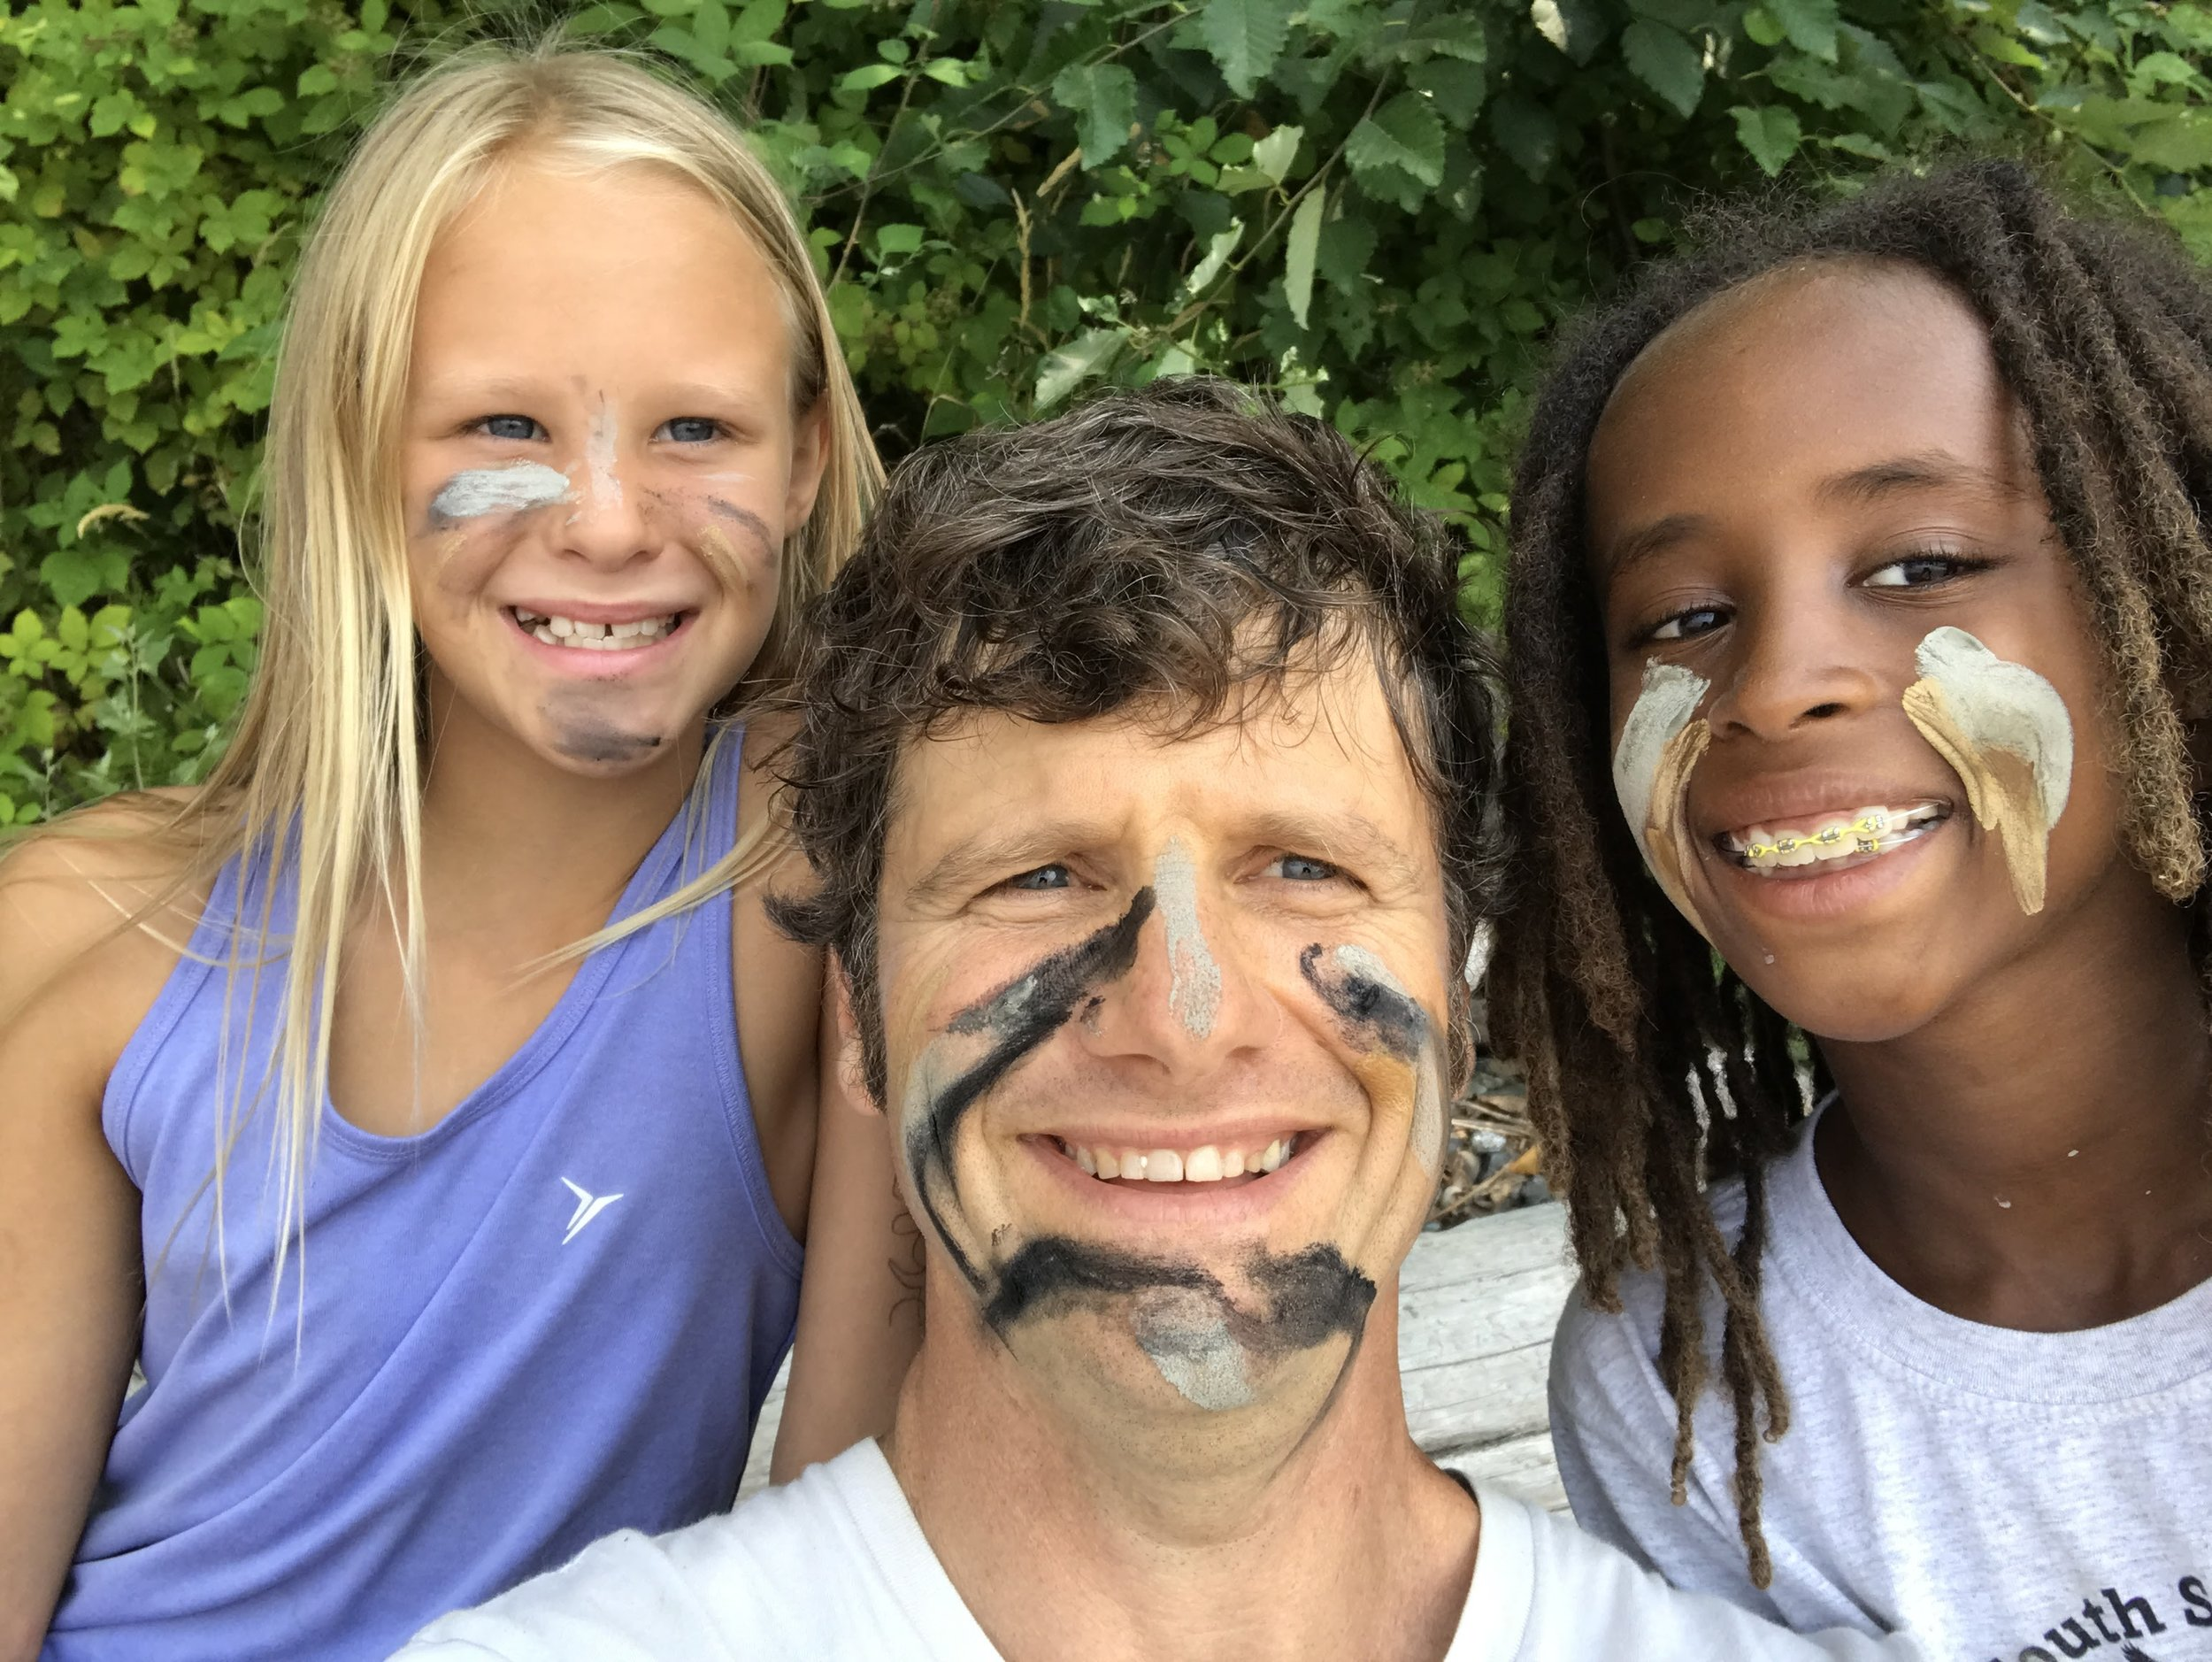 Face Paint Seahurst Park Summer Camps.